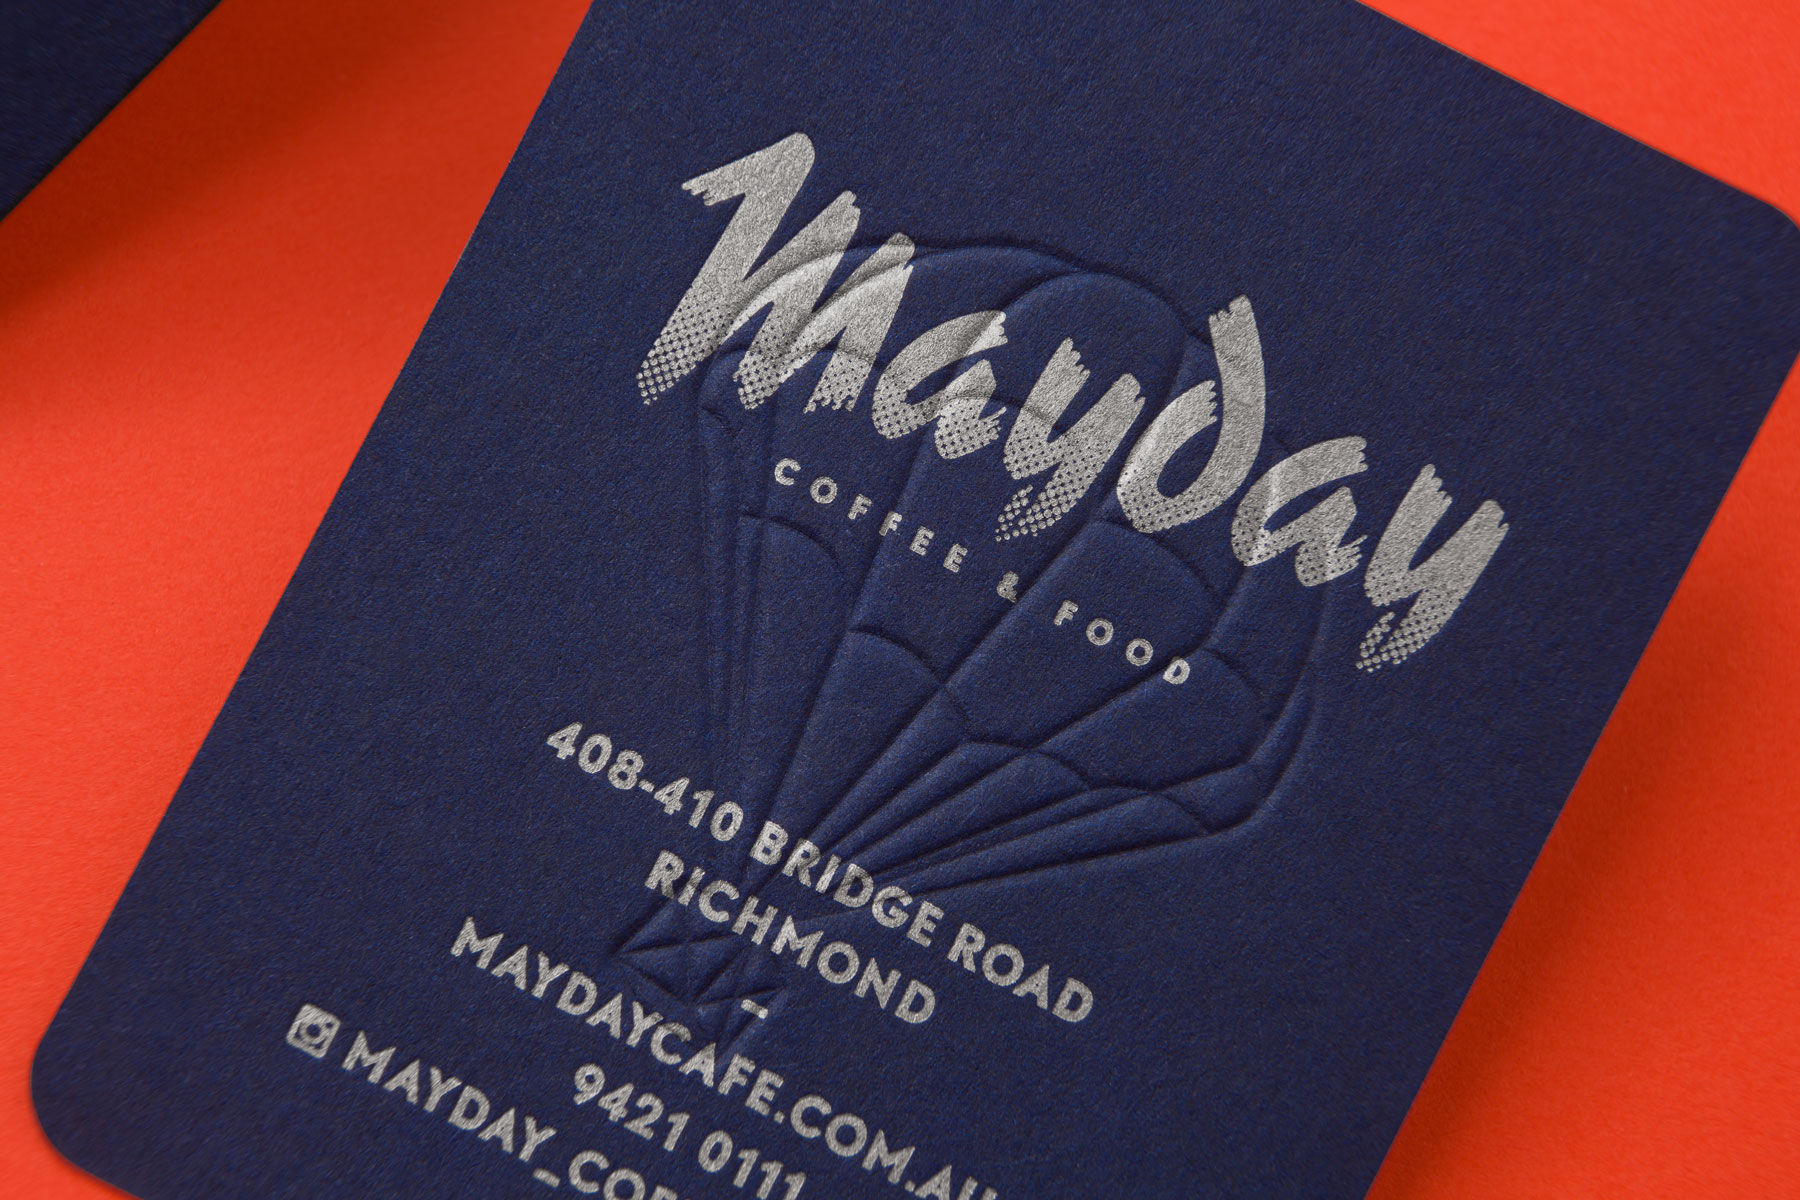 Mayday-Coffee-and-Food-Letterpress-Business-Cards